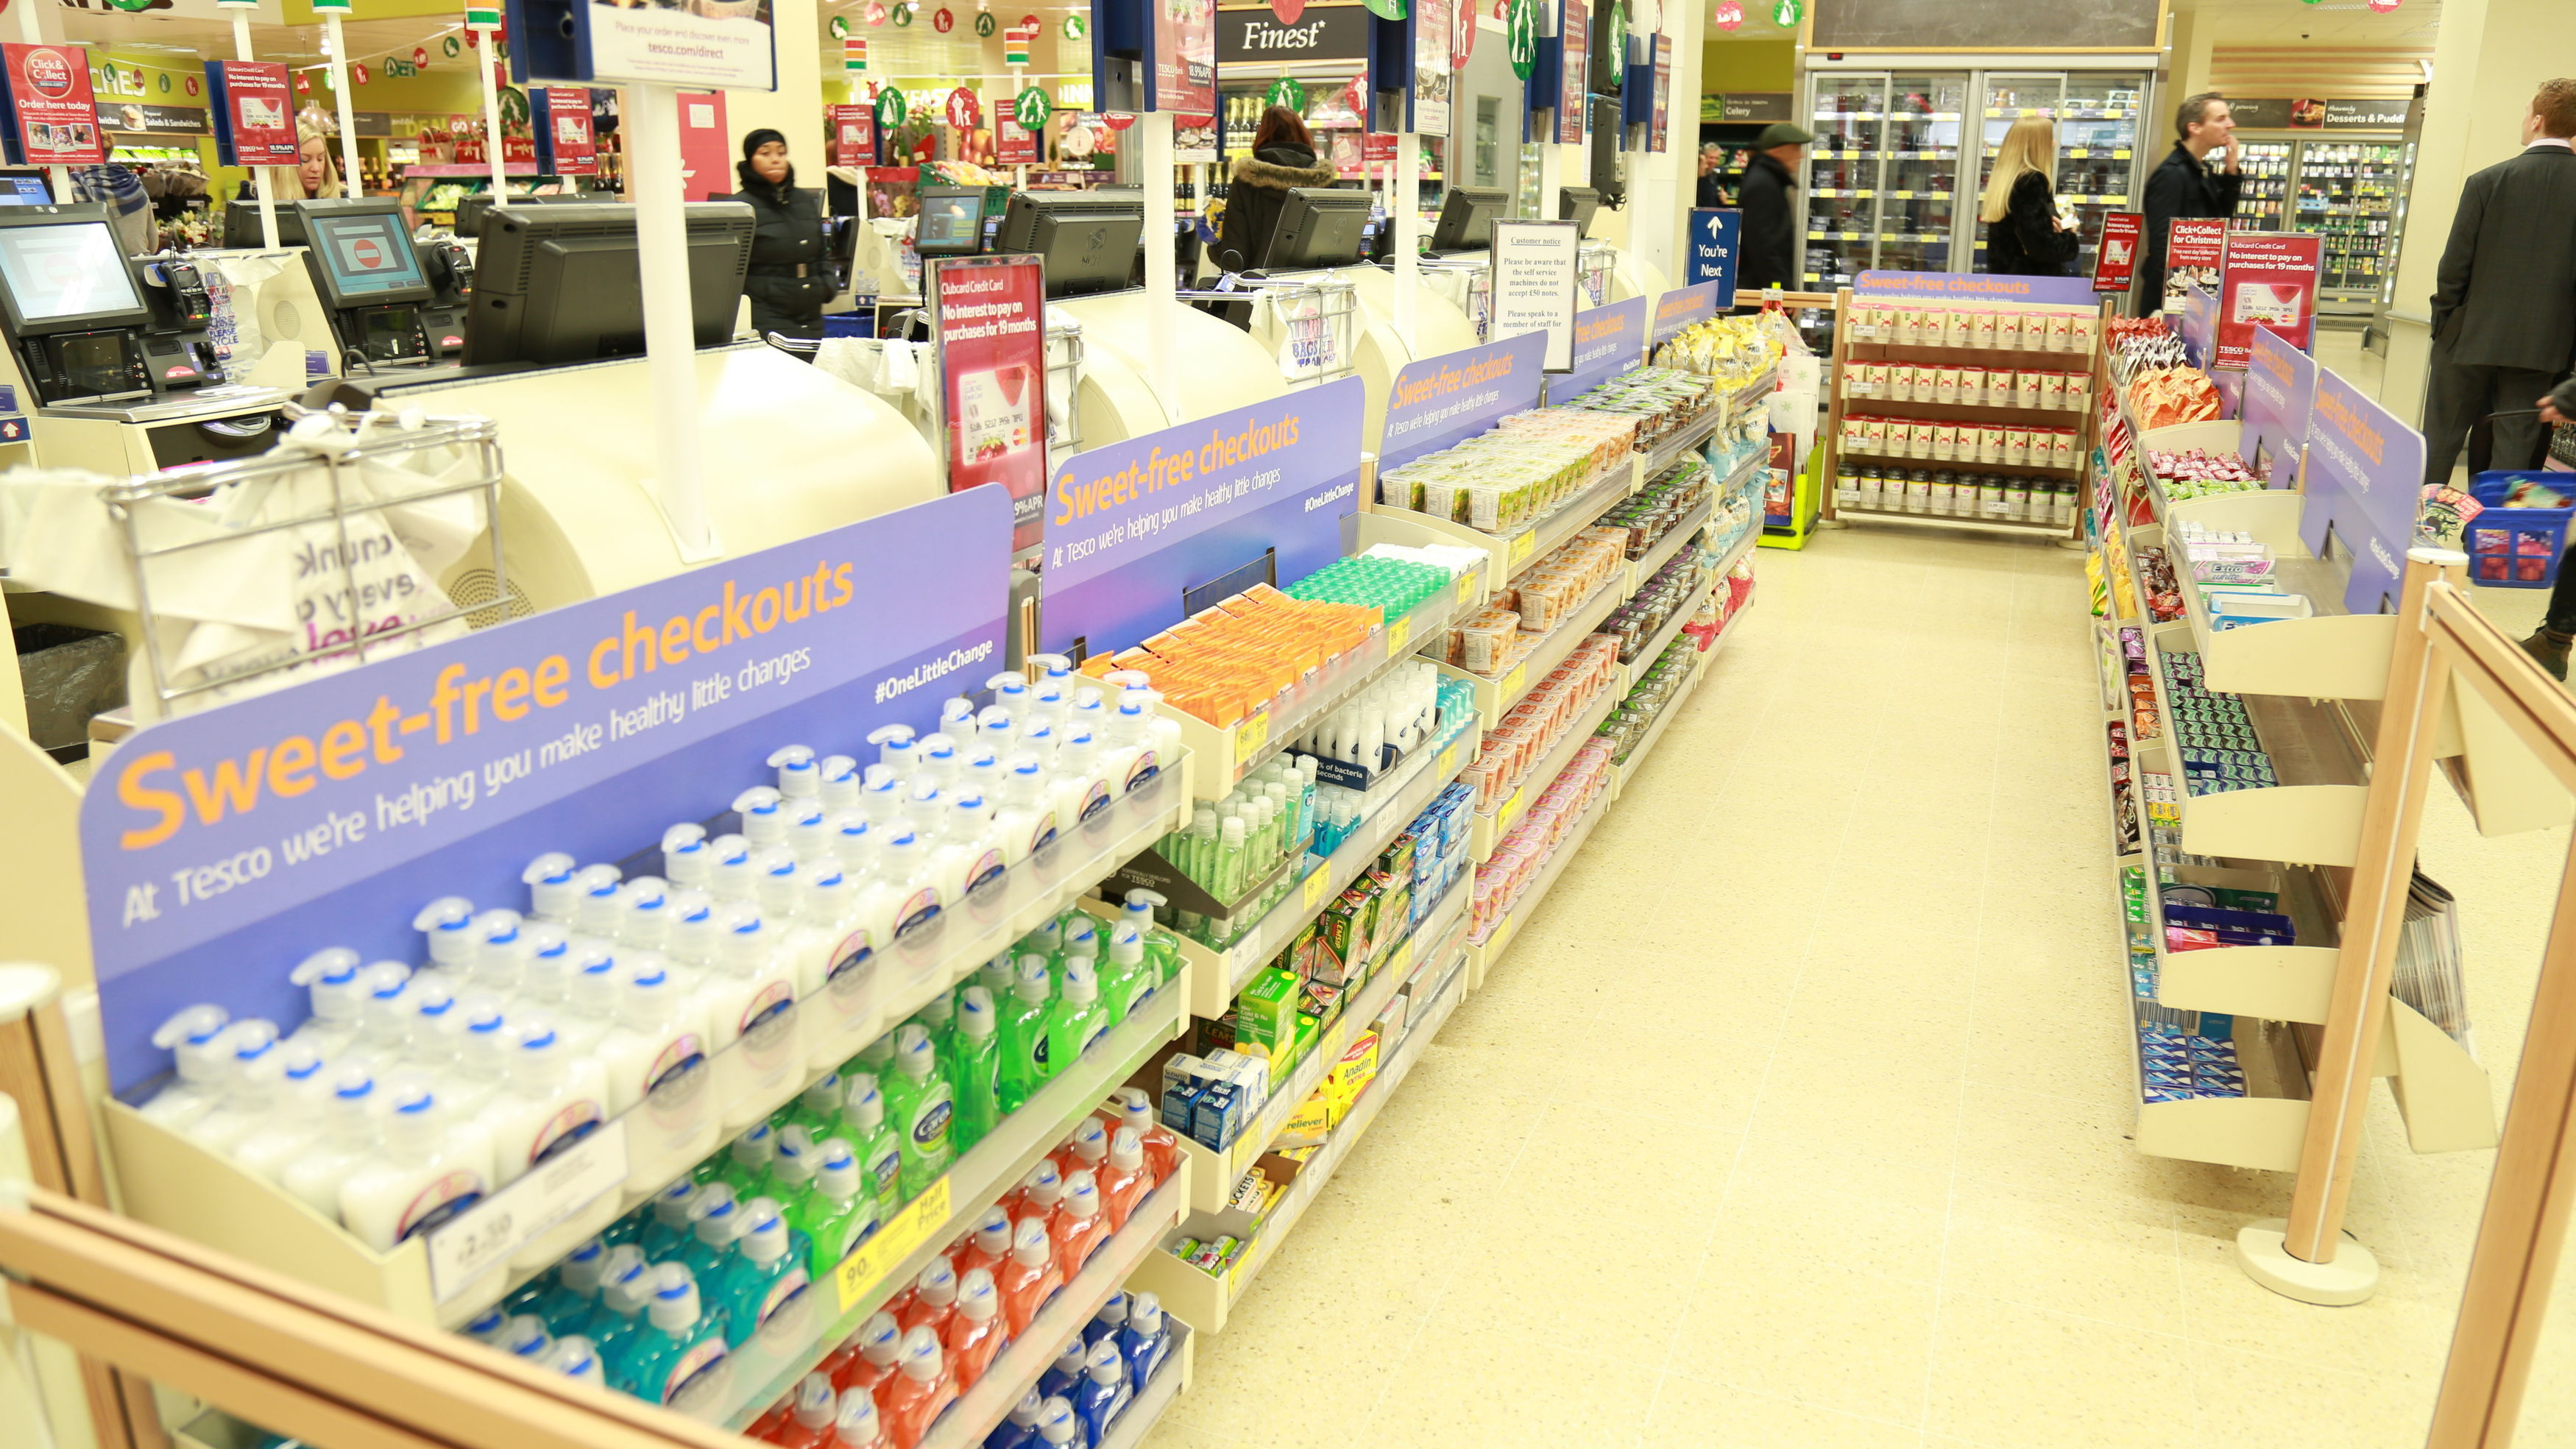 Are sweet-free checkouts a sign of the future? Tesco thinks so